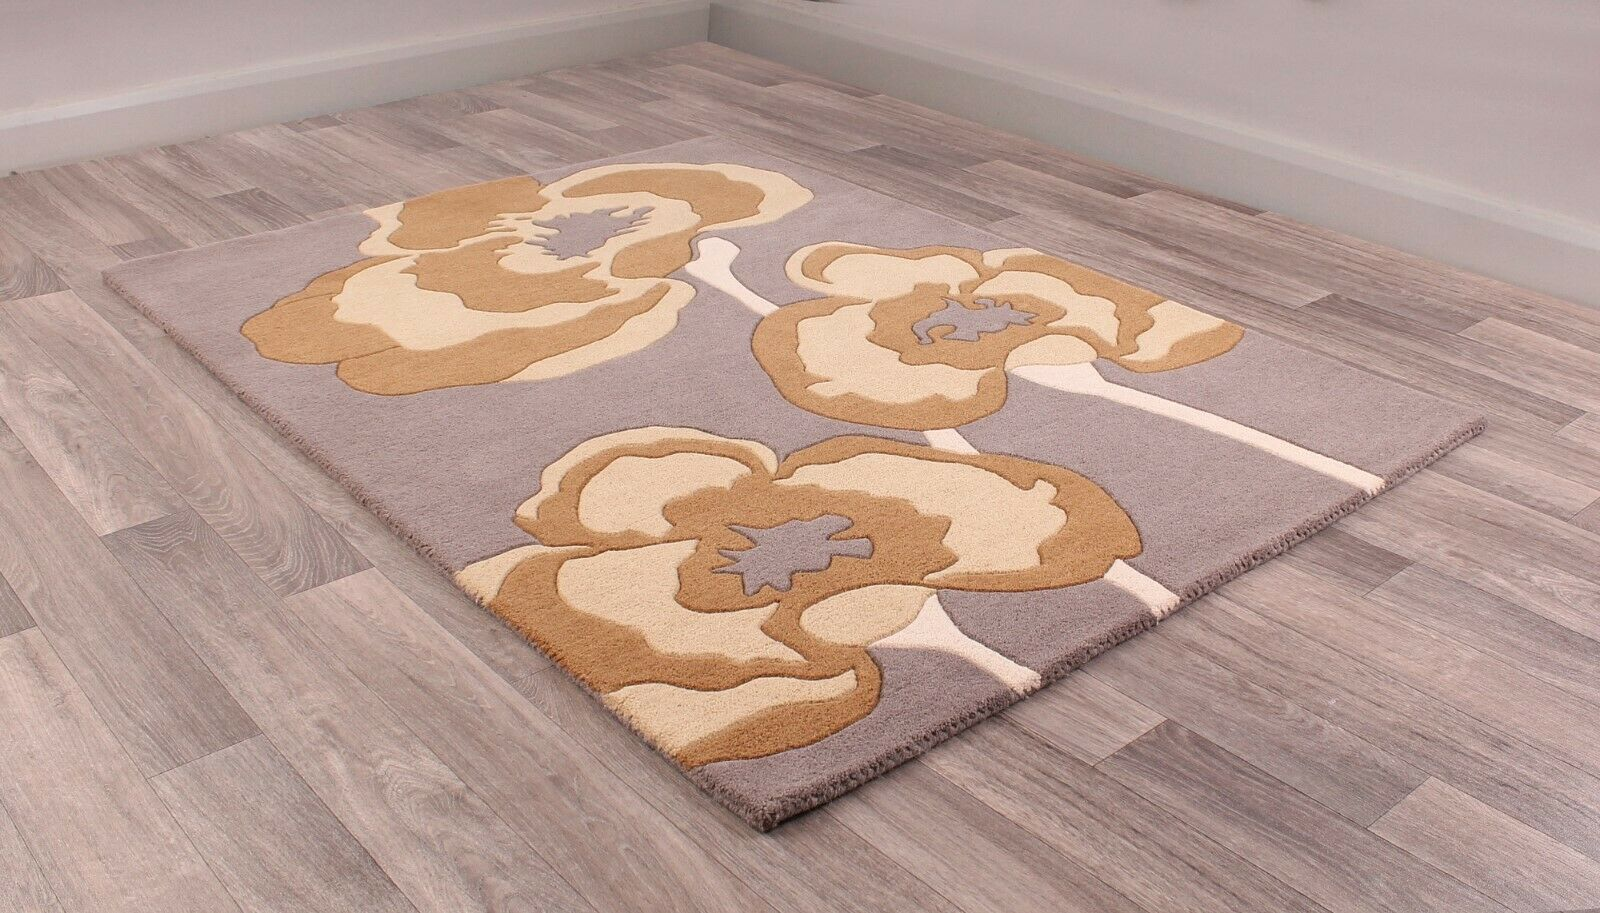 Ultimate Poppie Poppie Poppie grau Ochre Wool Luxurious Floral Poppy Rug in various Größes b842fa